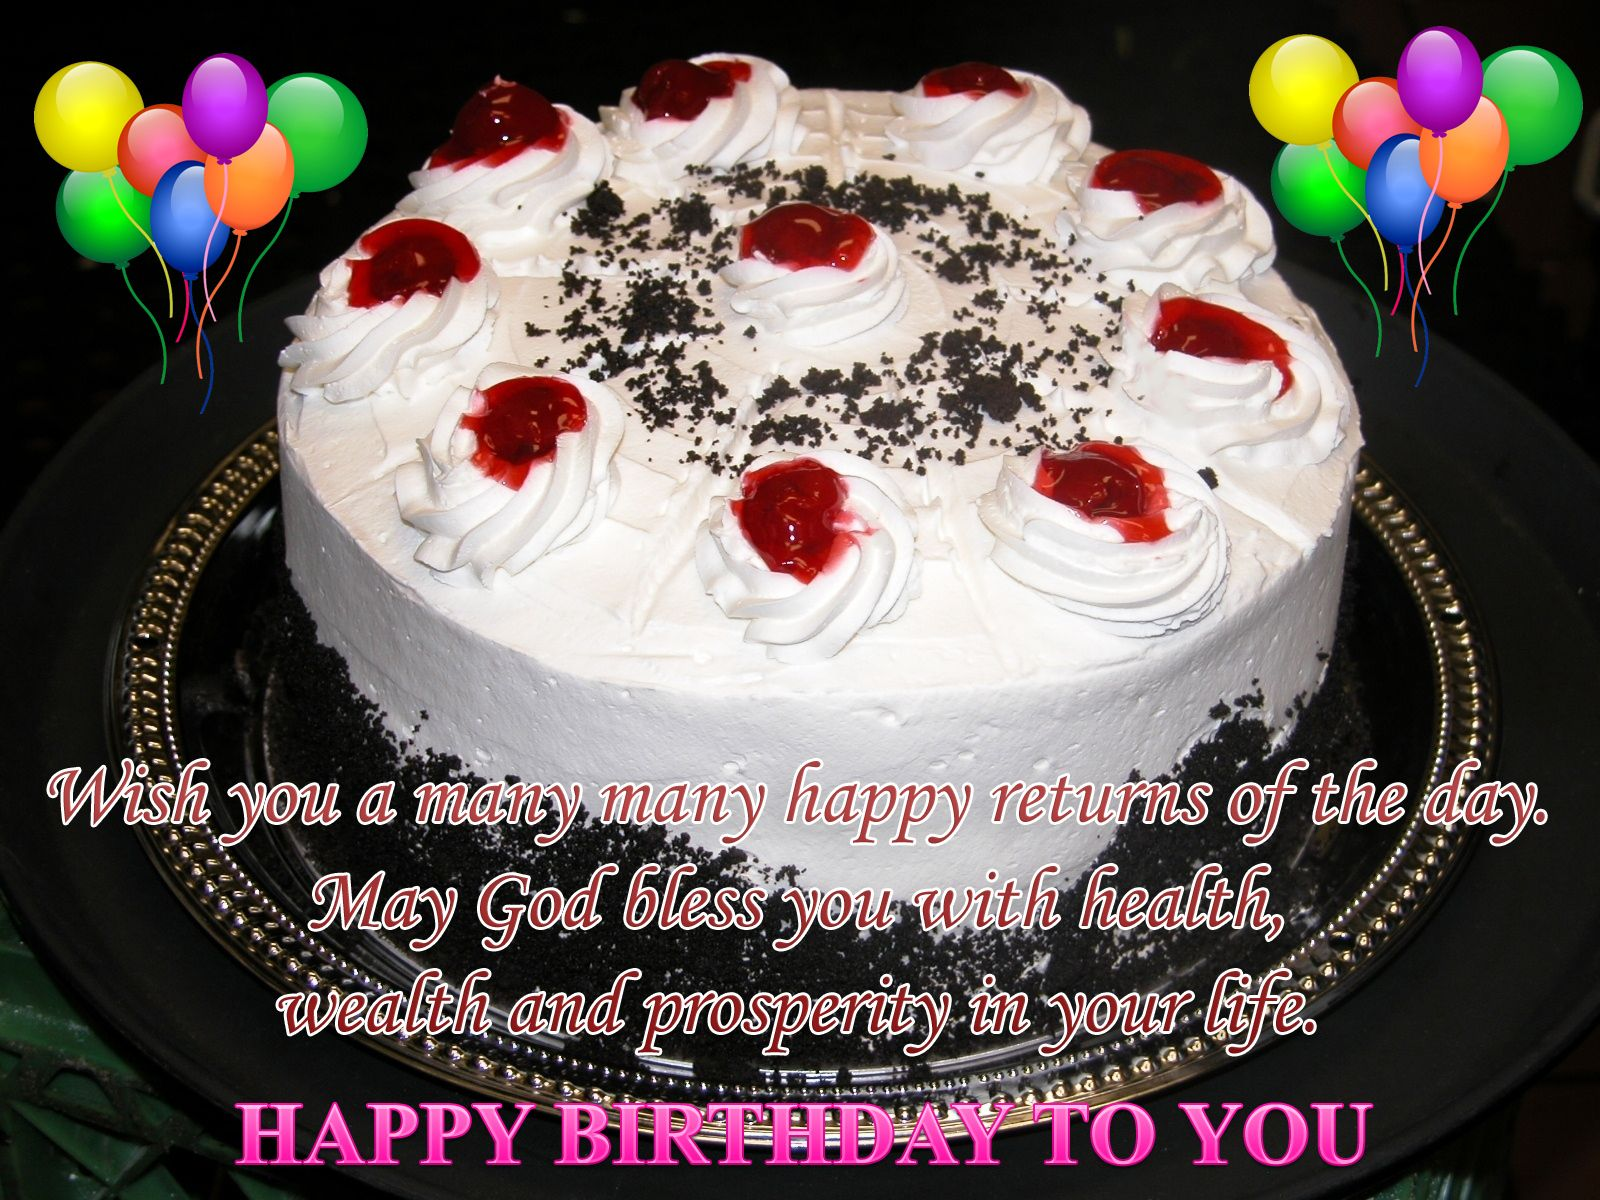 Valentines Day Birthday Message For Husband With Picture Happy Birthday Happy Bir Happy Birthday Cake Pictures Happy Birthday Cake Images Birthday Wishes Cake